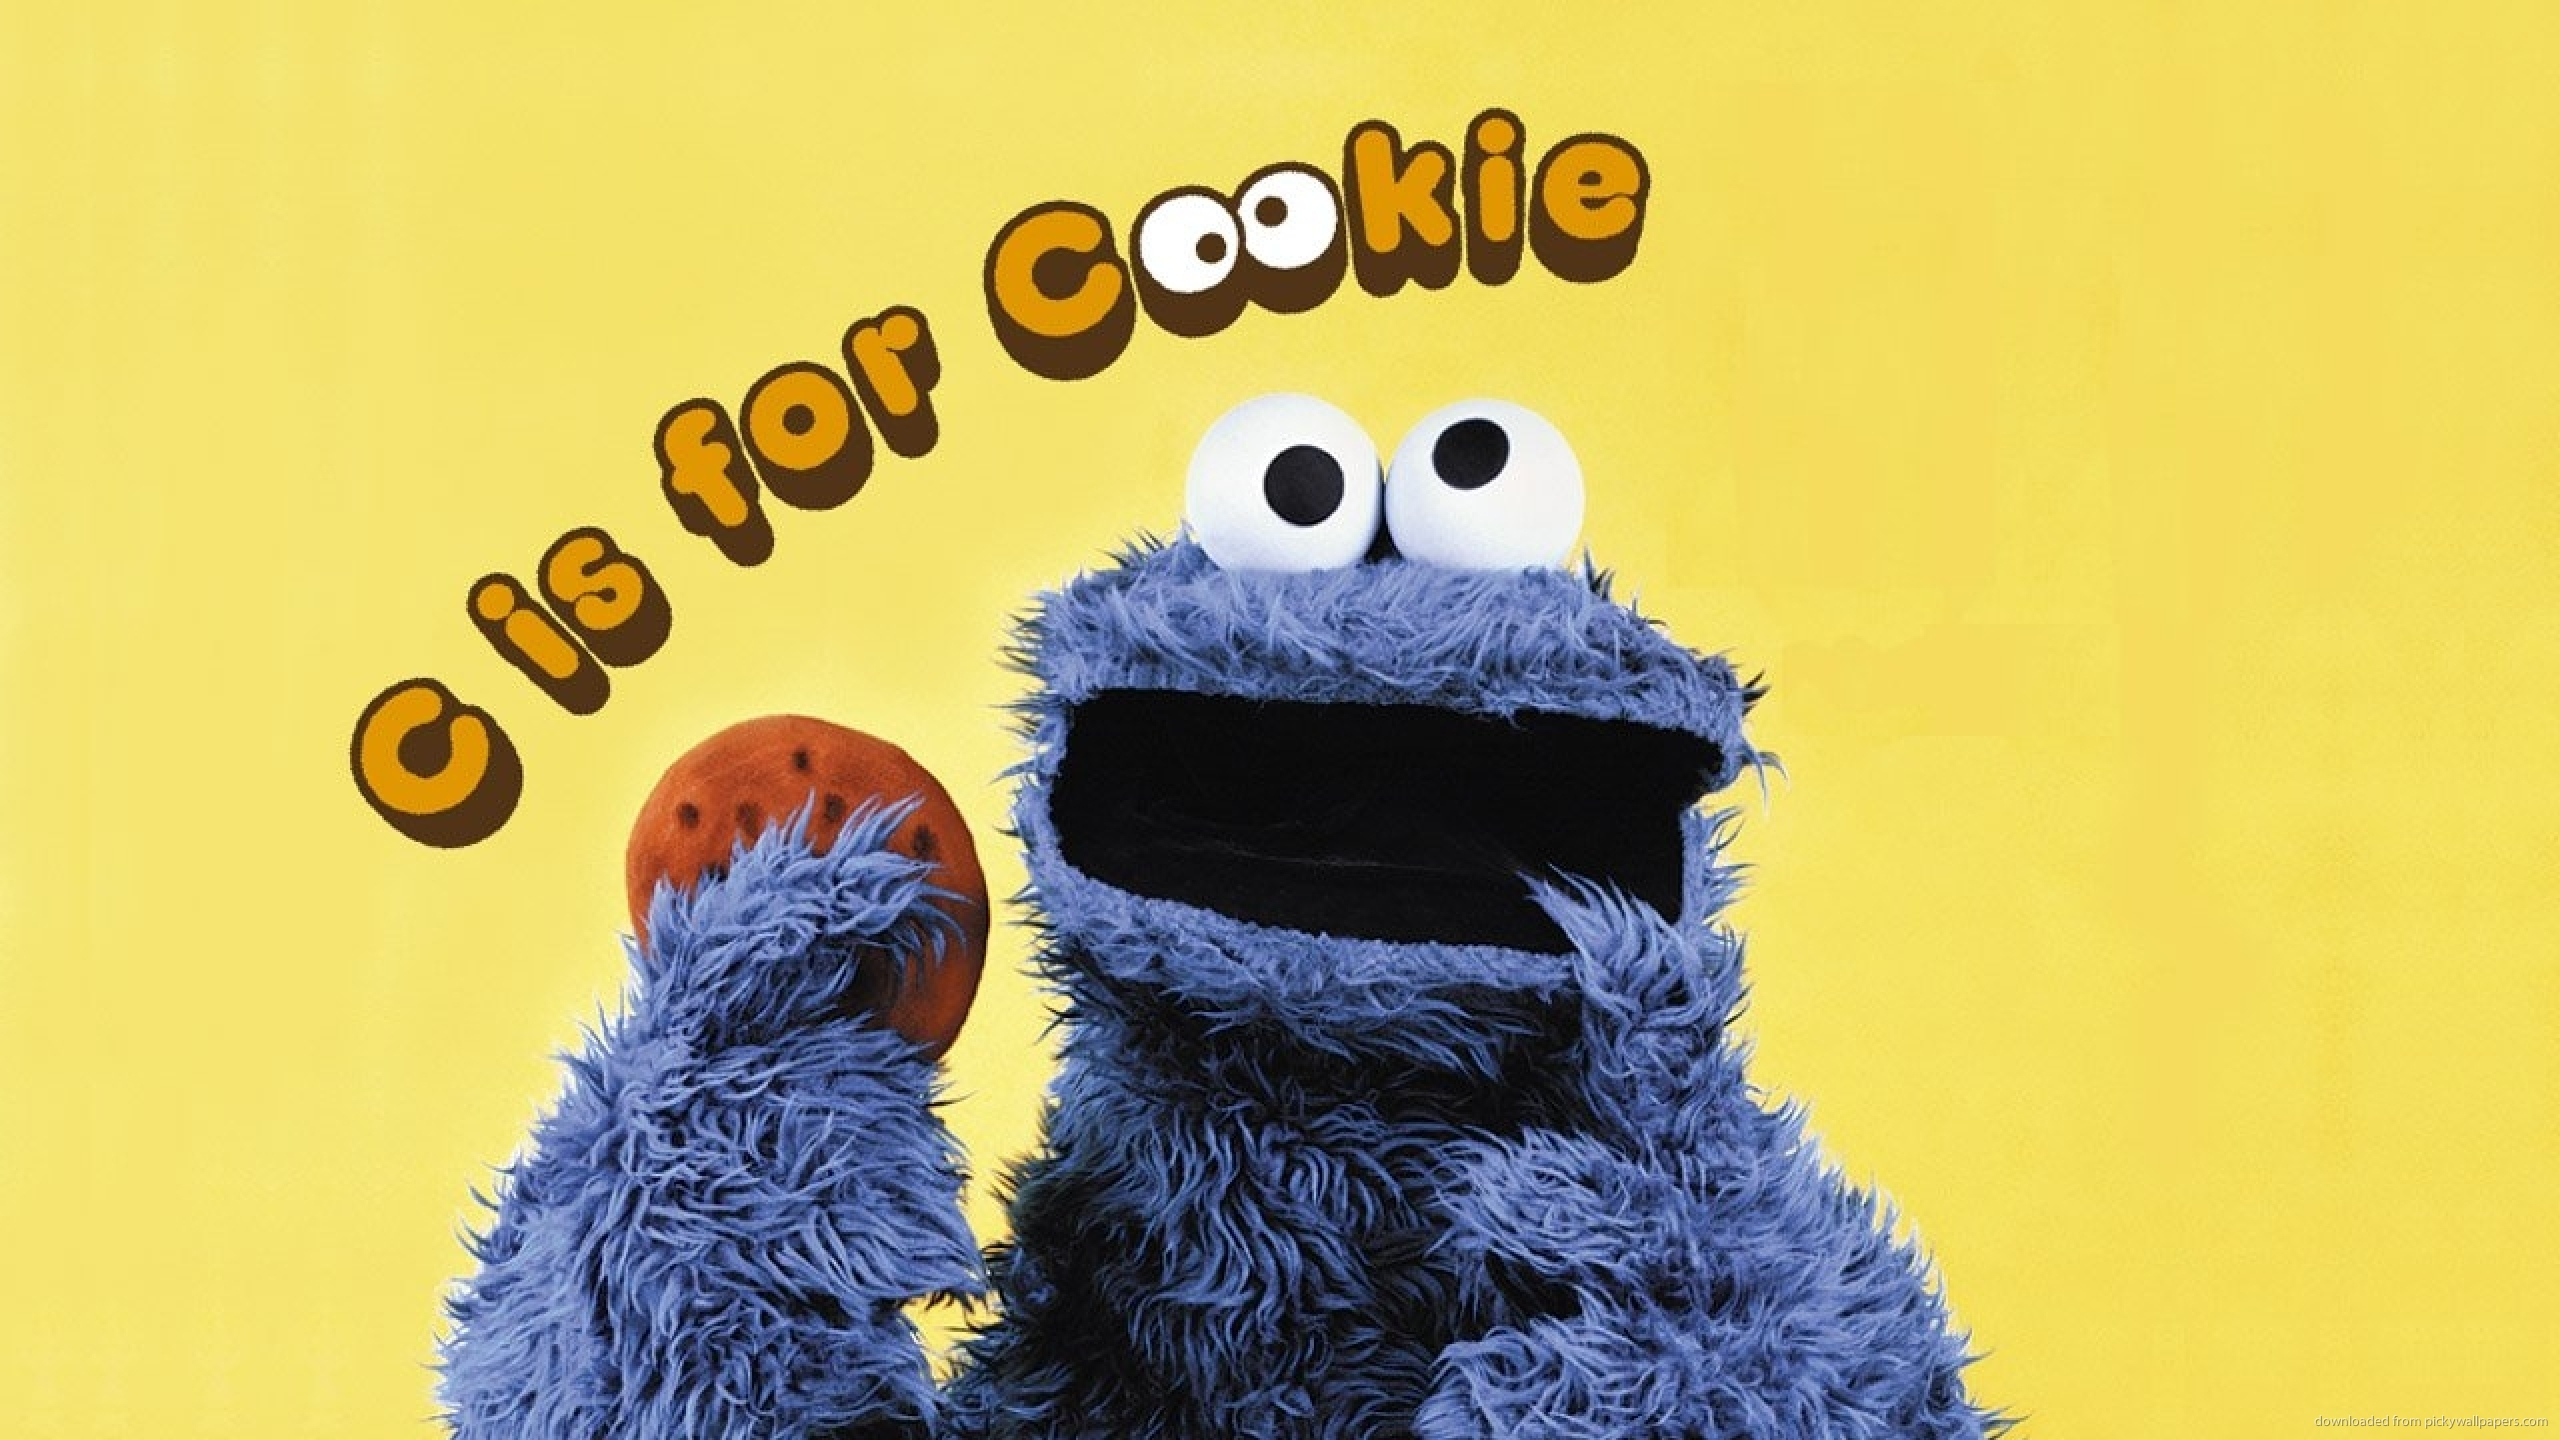 cookie monster song - 1131×707